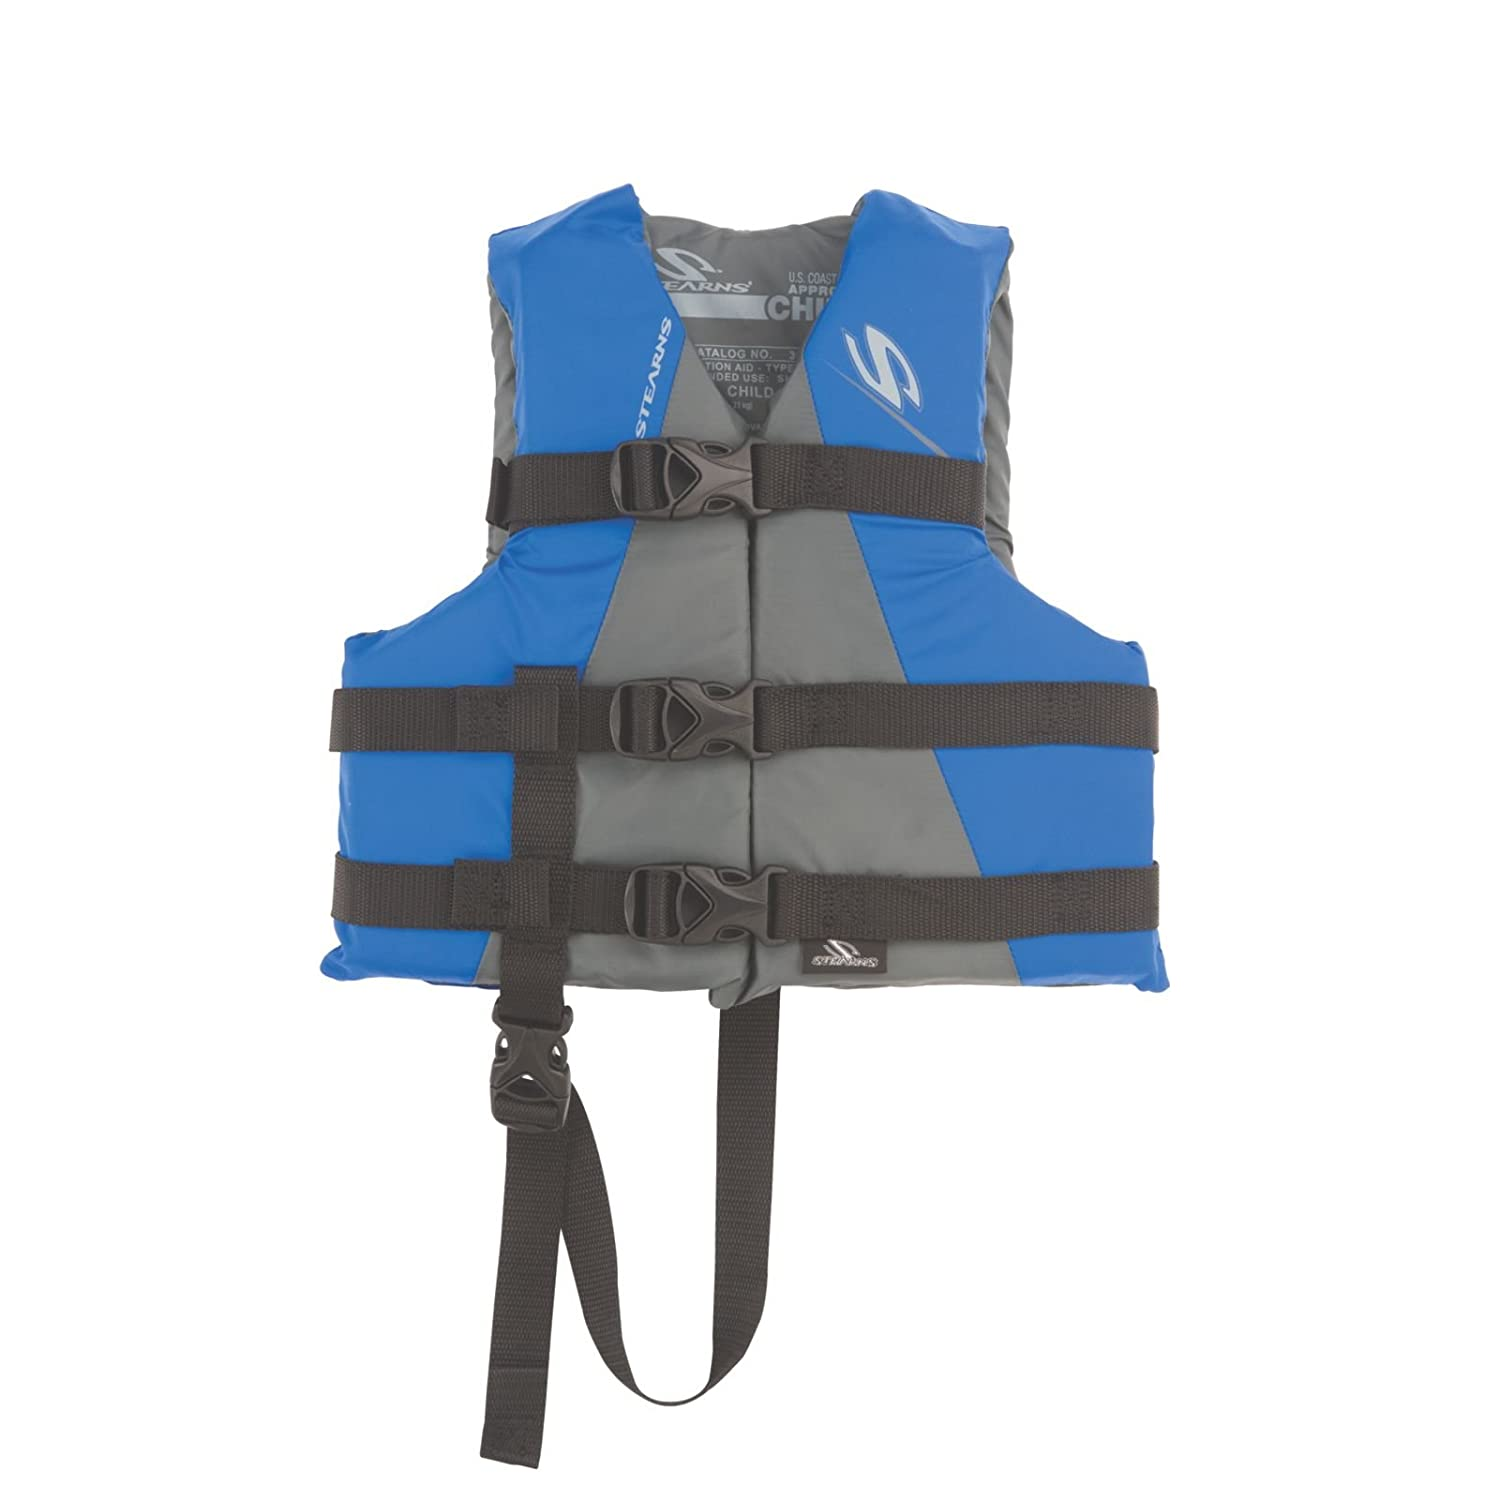 Stearns Watersport Classic Child's Life Jacket